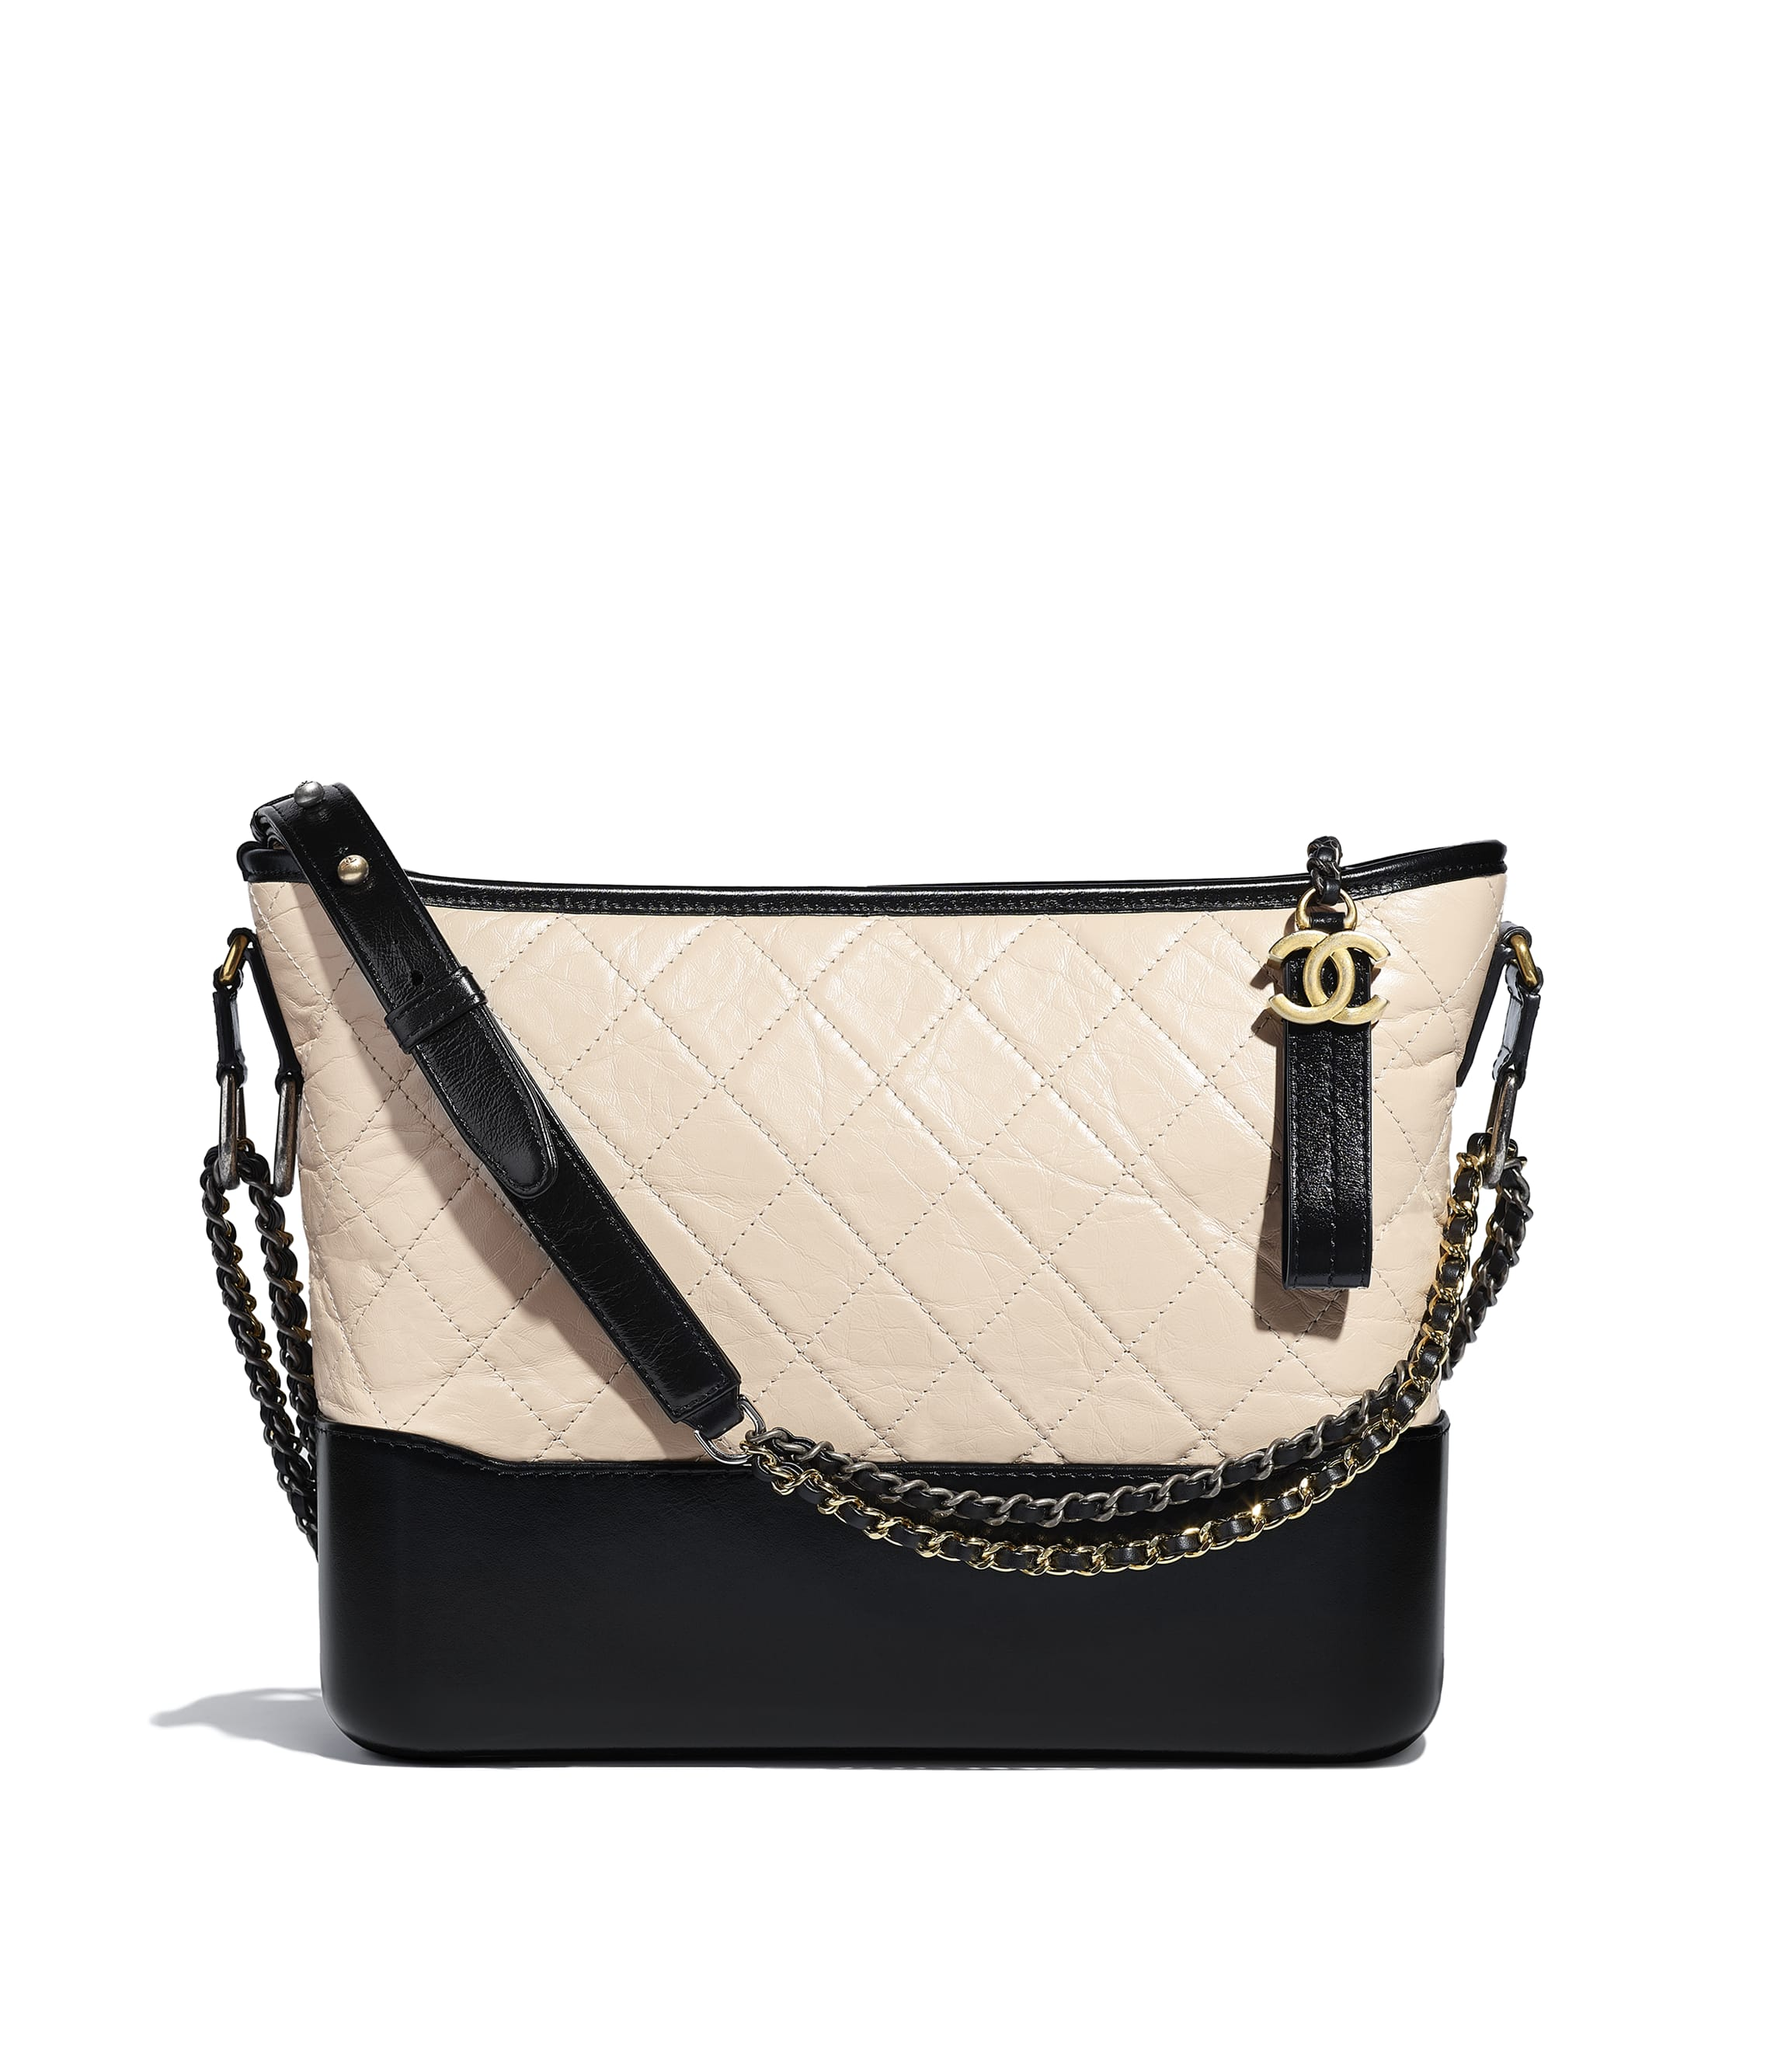 626c08cdc30b CHANEL'S GABRIELLE Hobo Bag. Aged Calfskin, Smooth Calfskin, Silver-Tone &  Gold-Tone Metal. Beige & Black